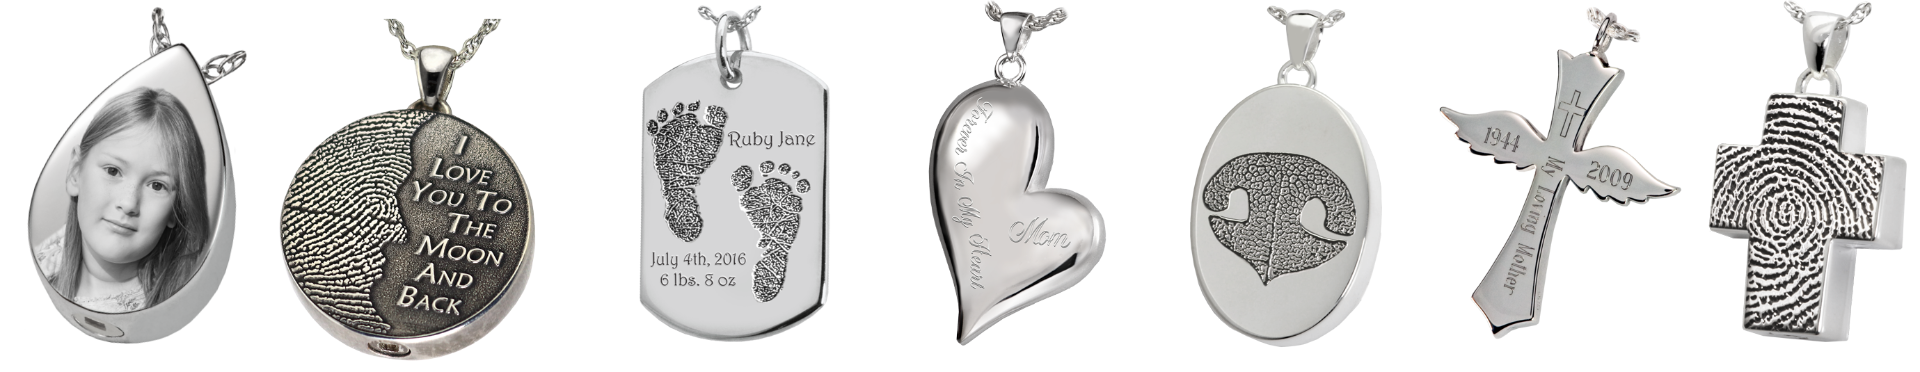 Engraved Pendants Examples